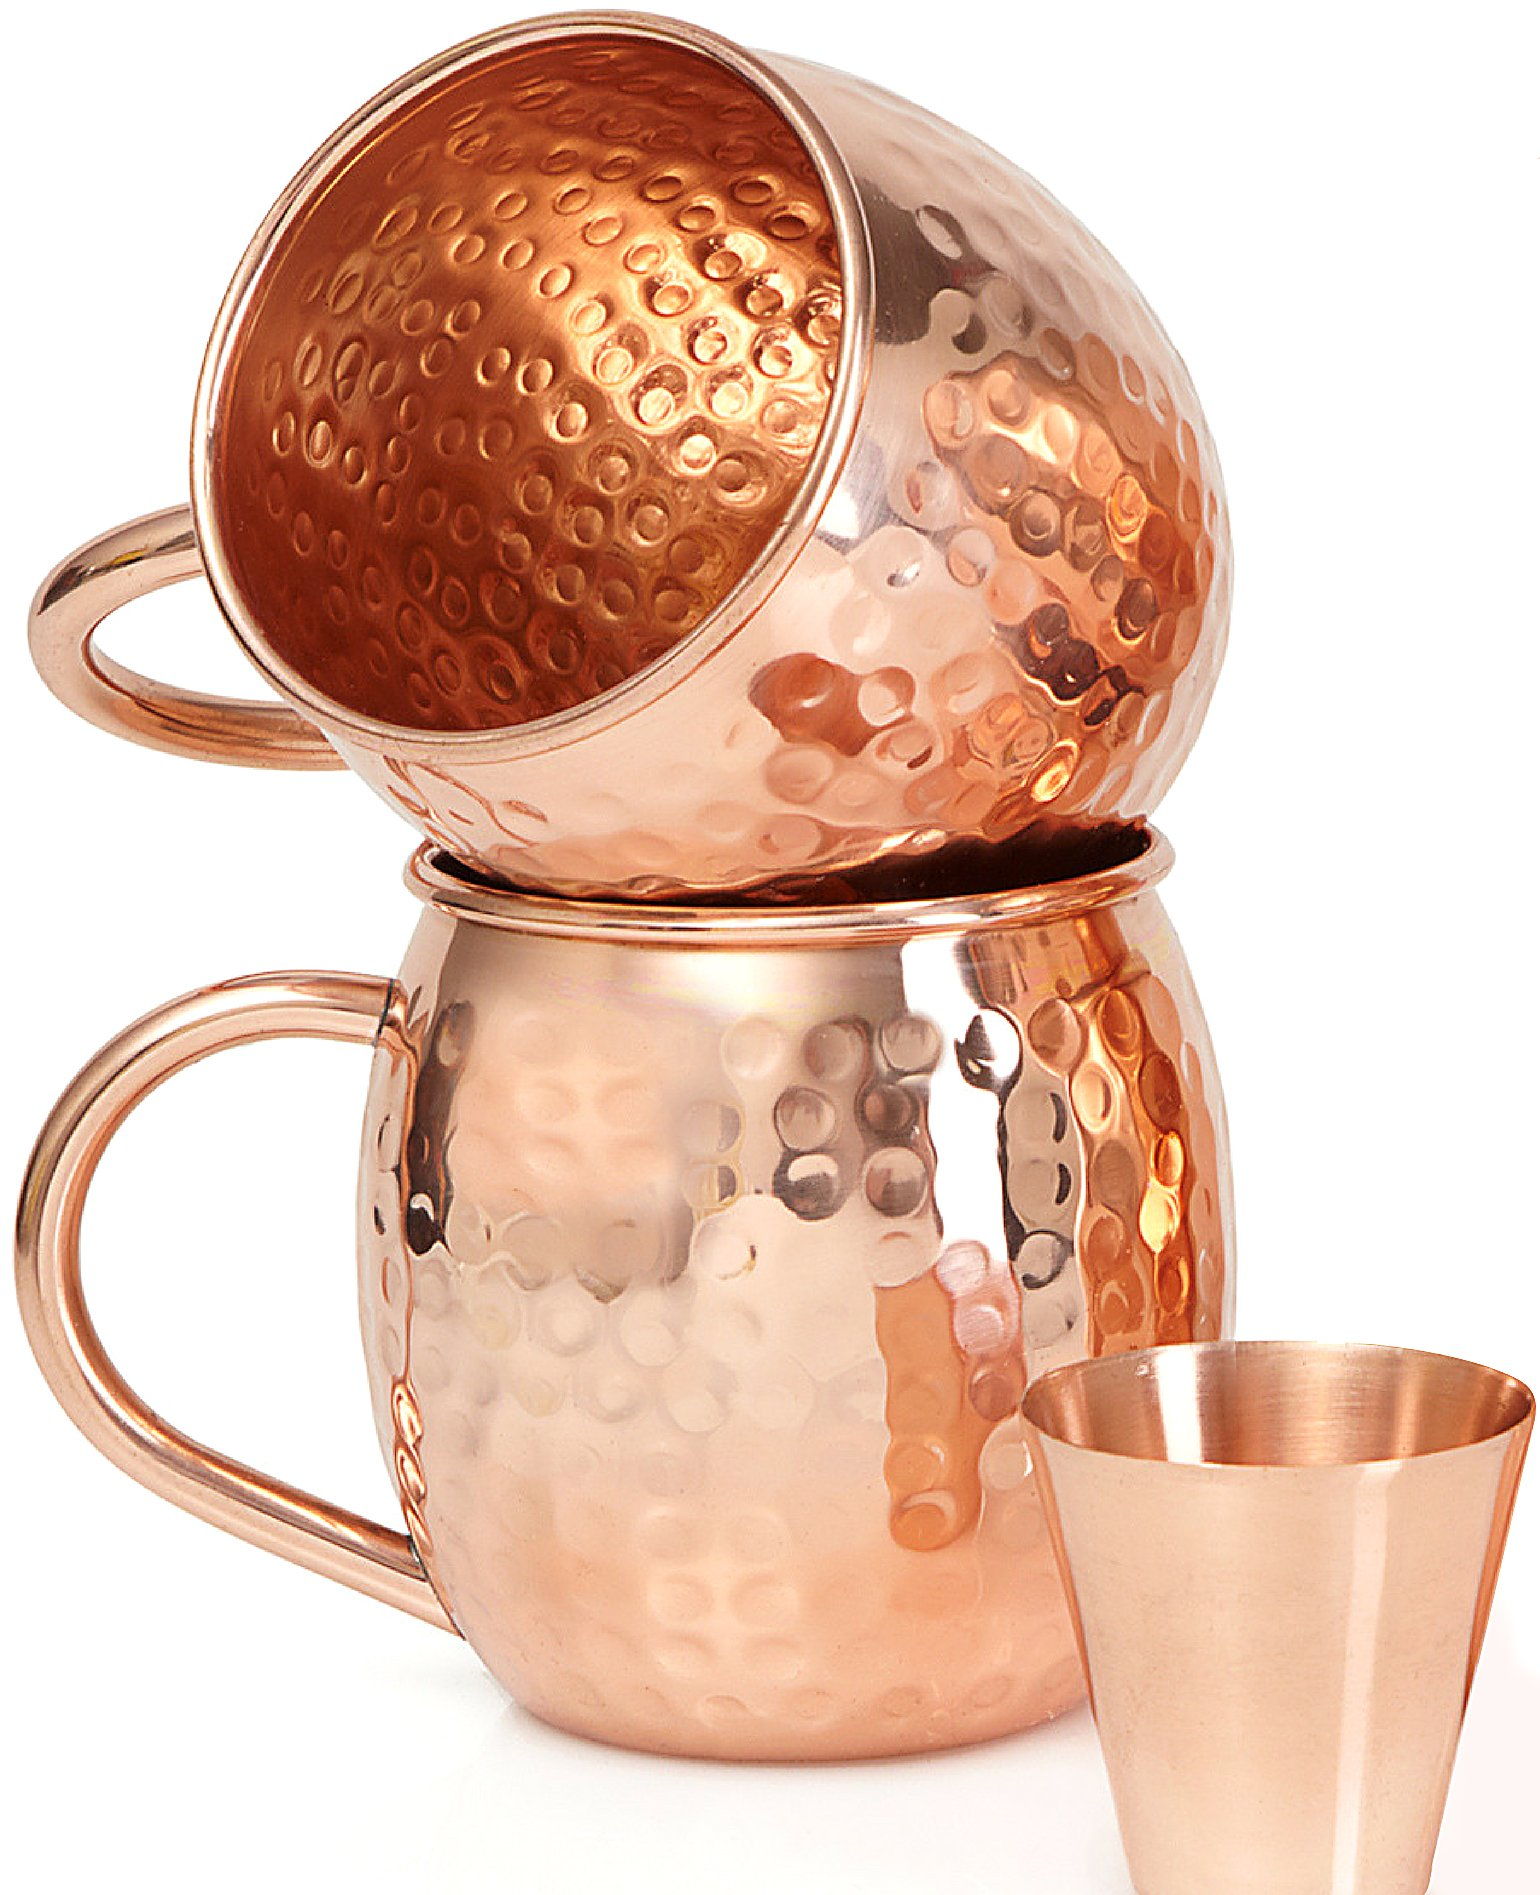 Set of 2 Moscow Mule Copper Mugs with Shot Glass - Two 16 Oz Copper Moscow Mule Mugs - Solid Copper Hammered Mug - Copper Cups for Moscow Mules by Willow & Everett (Image #1)